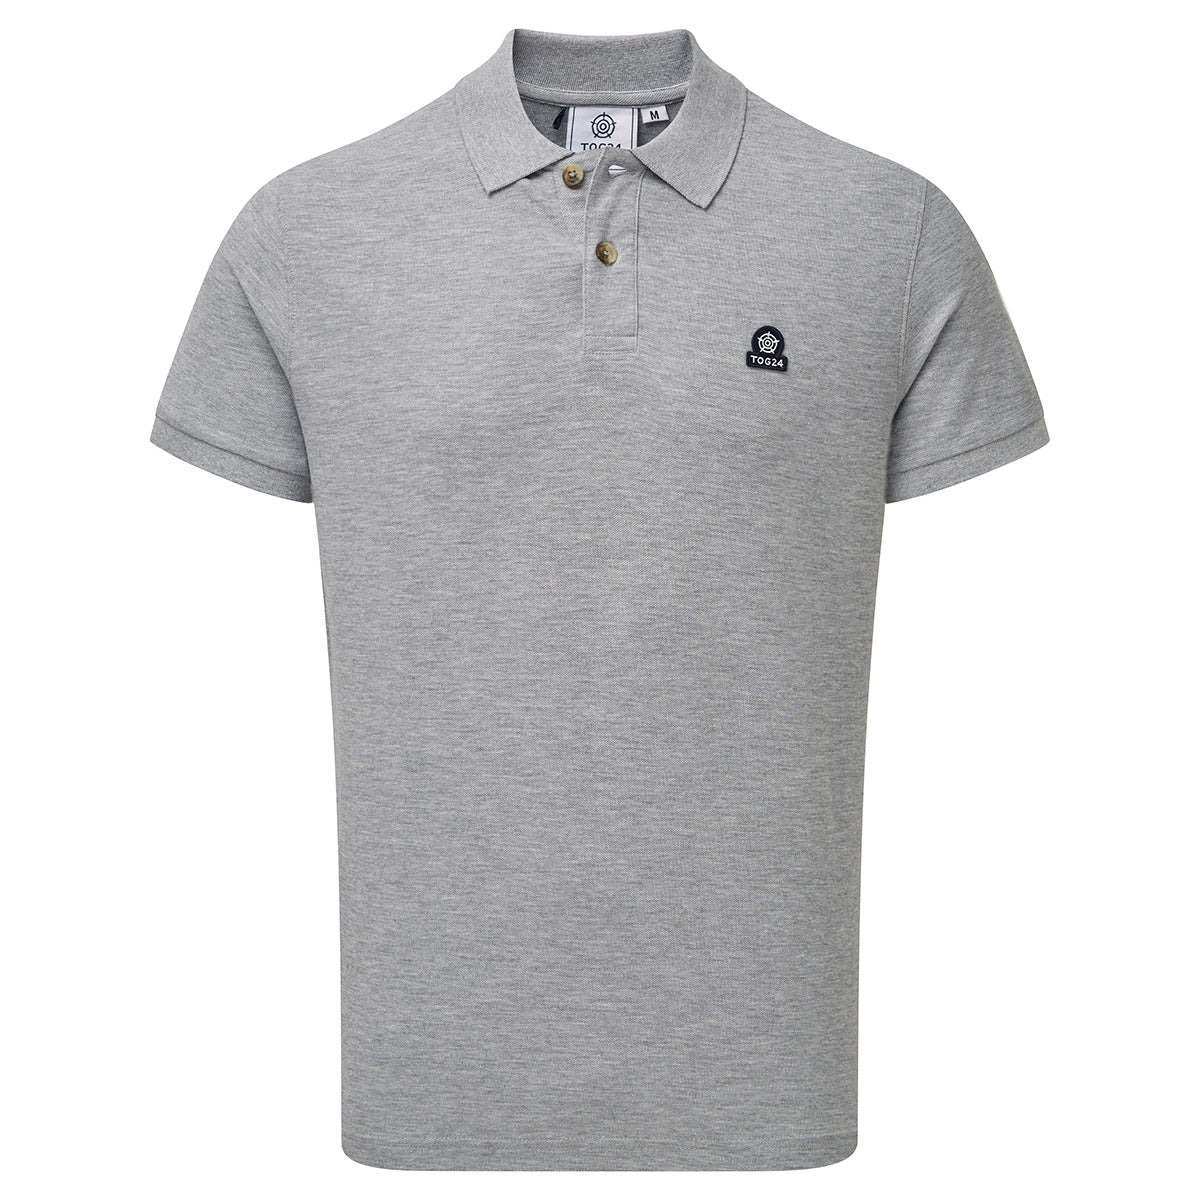 Percy Mens Pique Polo Shirt - Grey Marl image 4